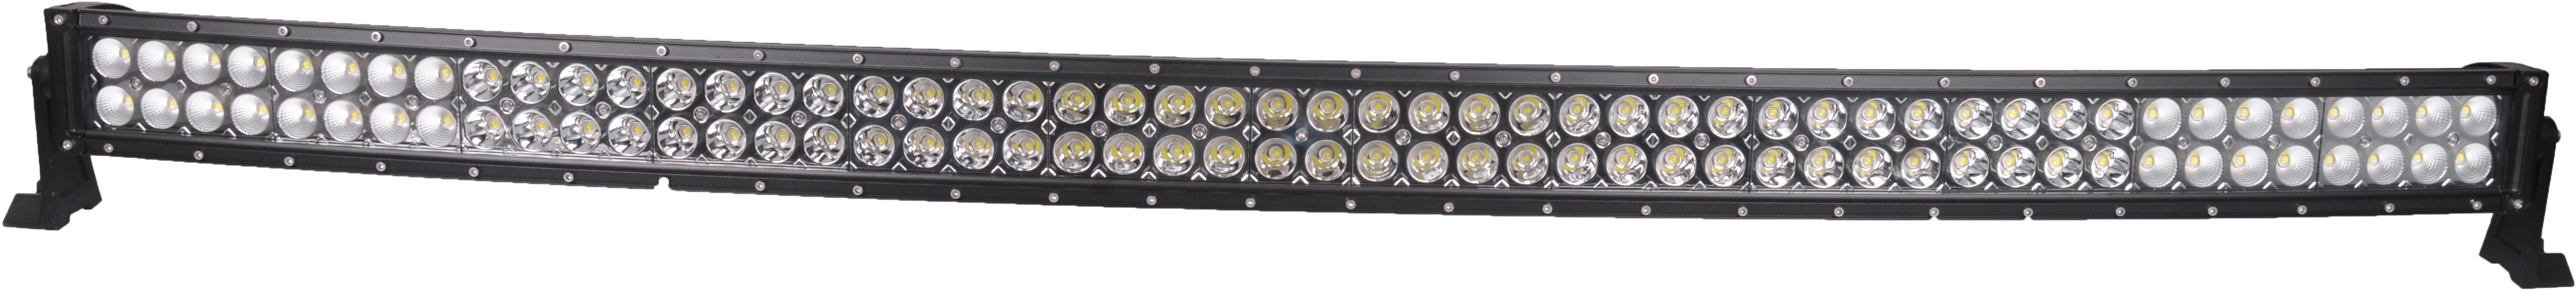 TK300WCB LED LIGHT BAR